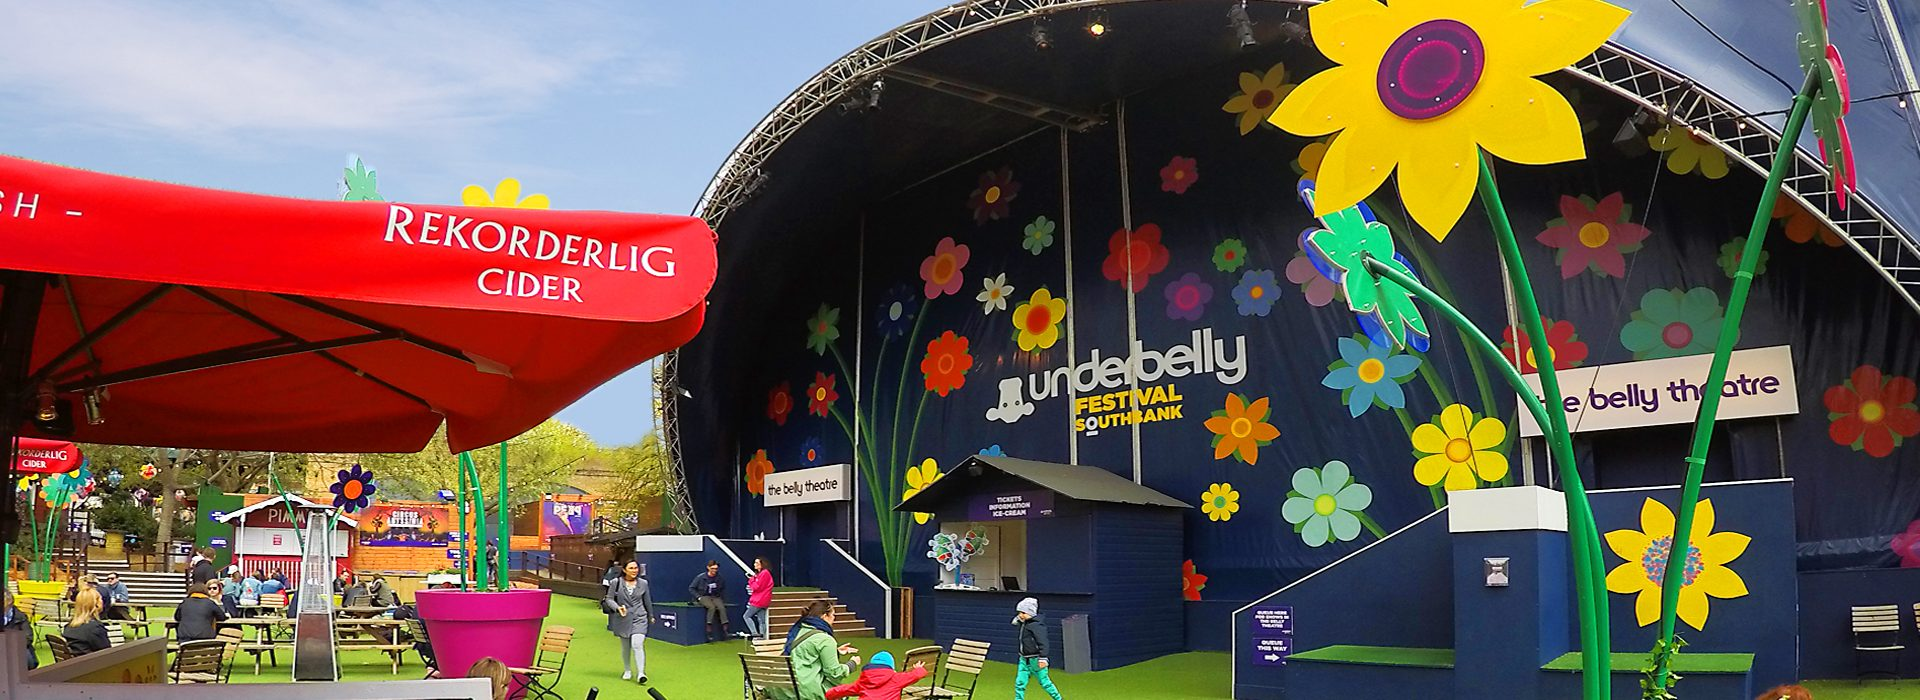 underbelly_summer_comedy_festival_print_and_install